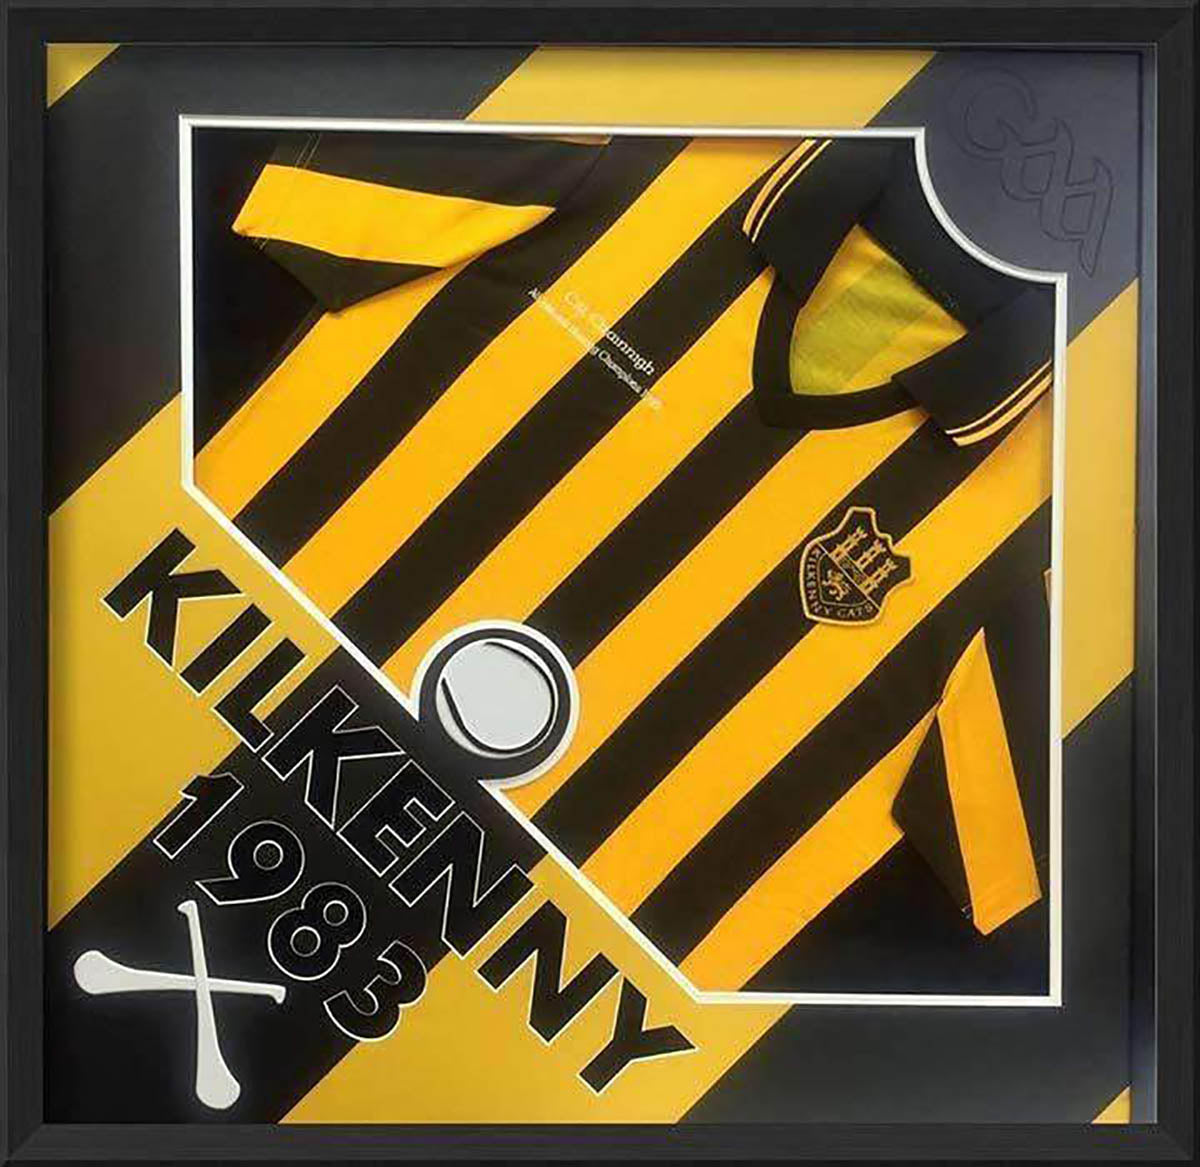 Hurling Jersey frame - with multi-graphical design elements